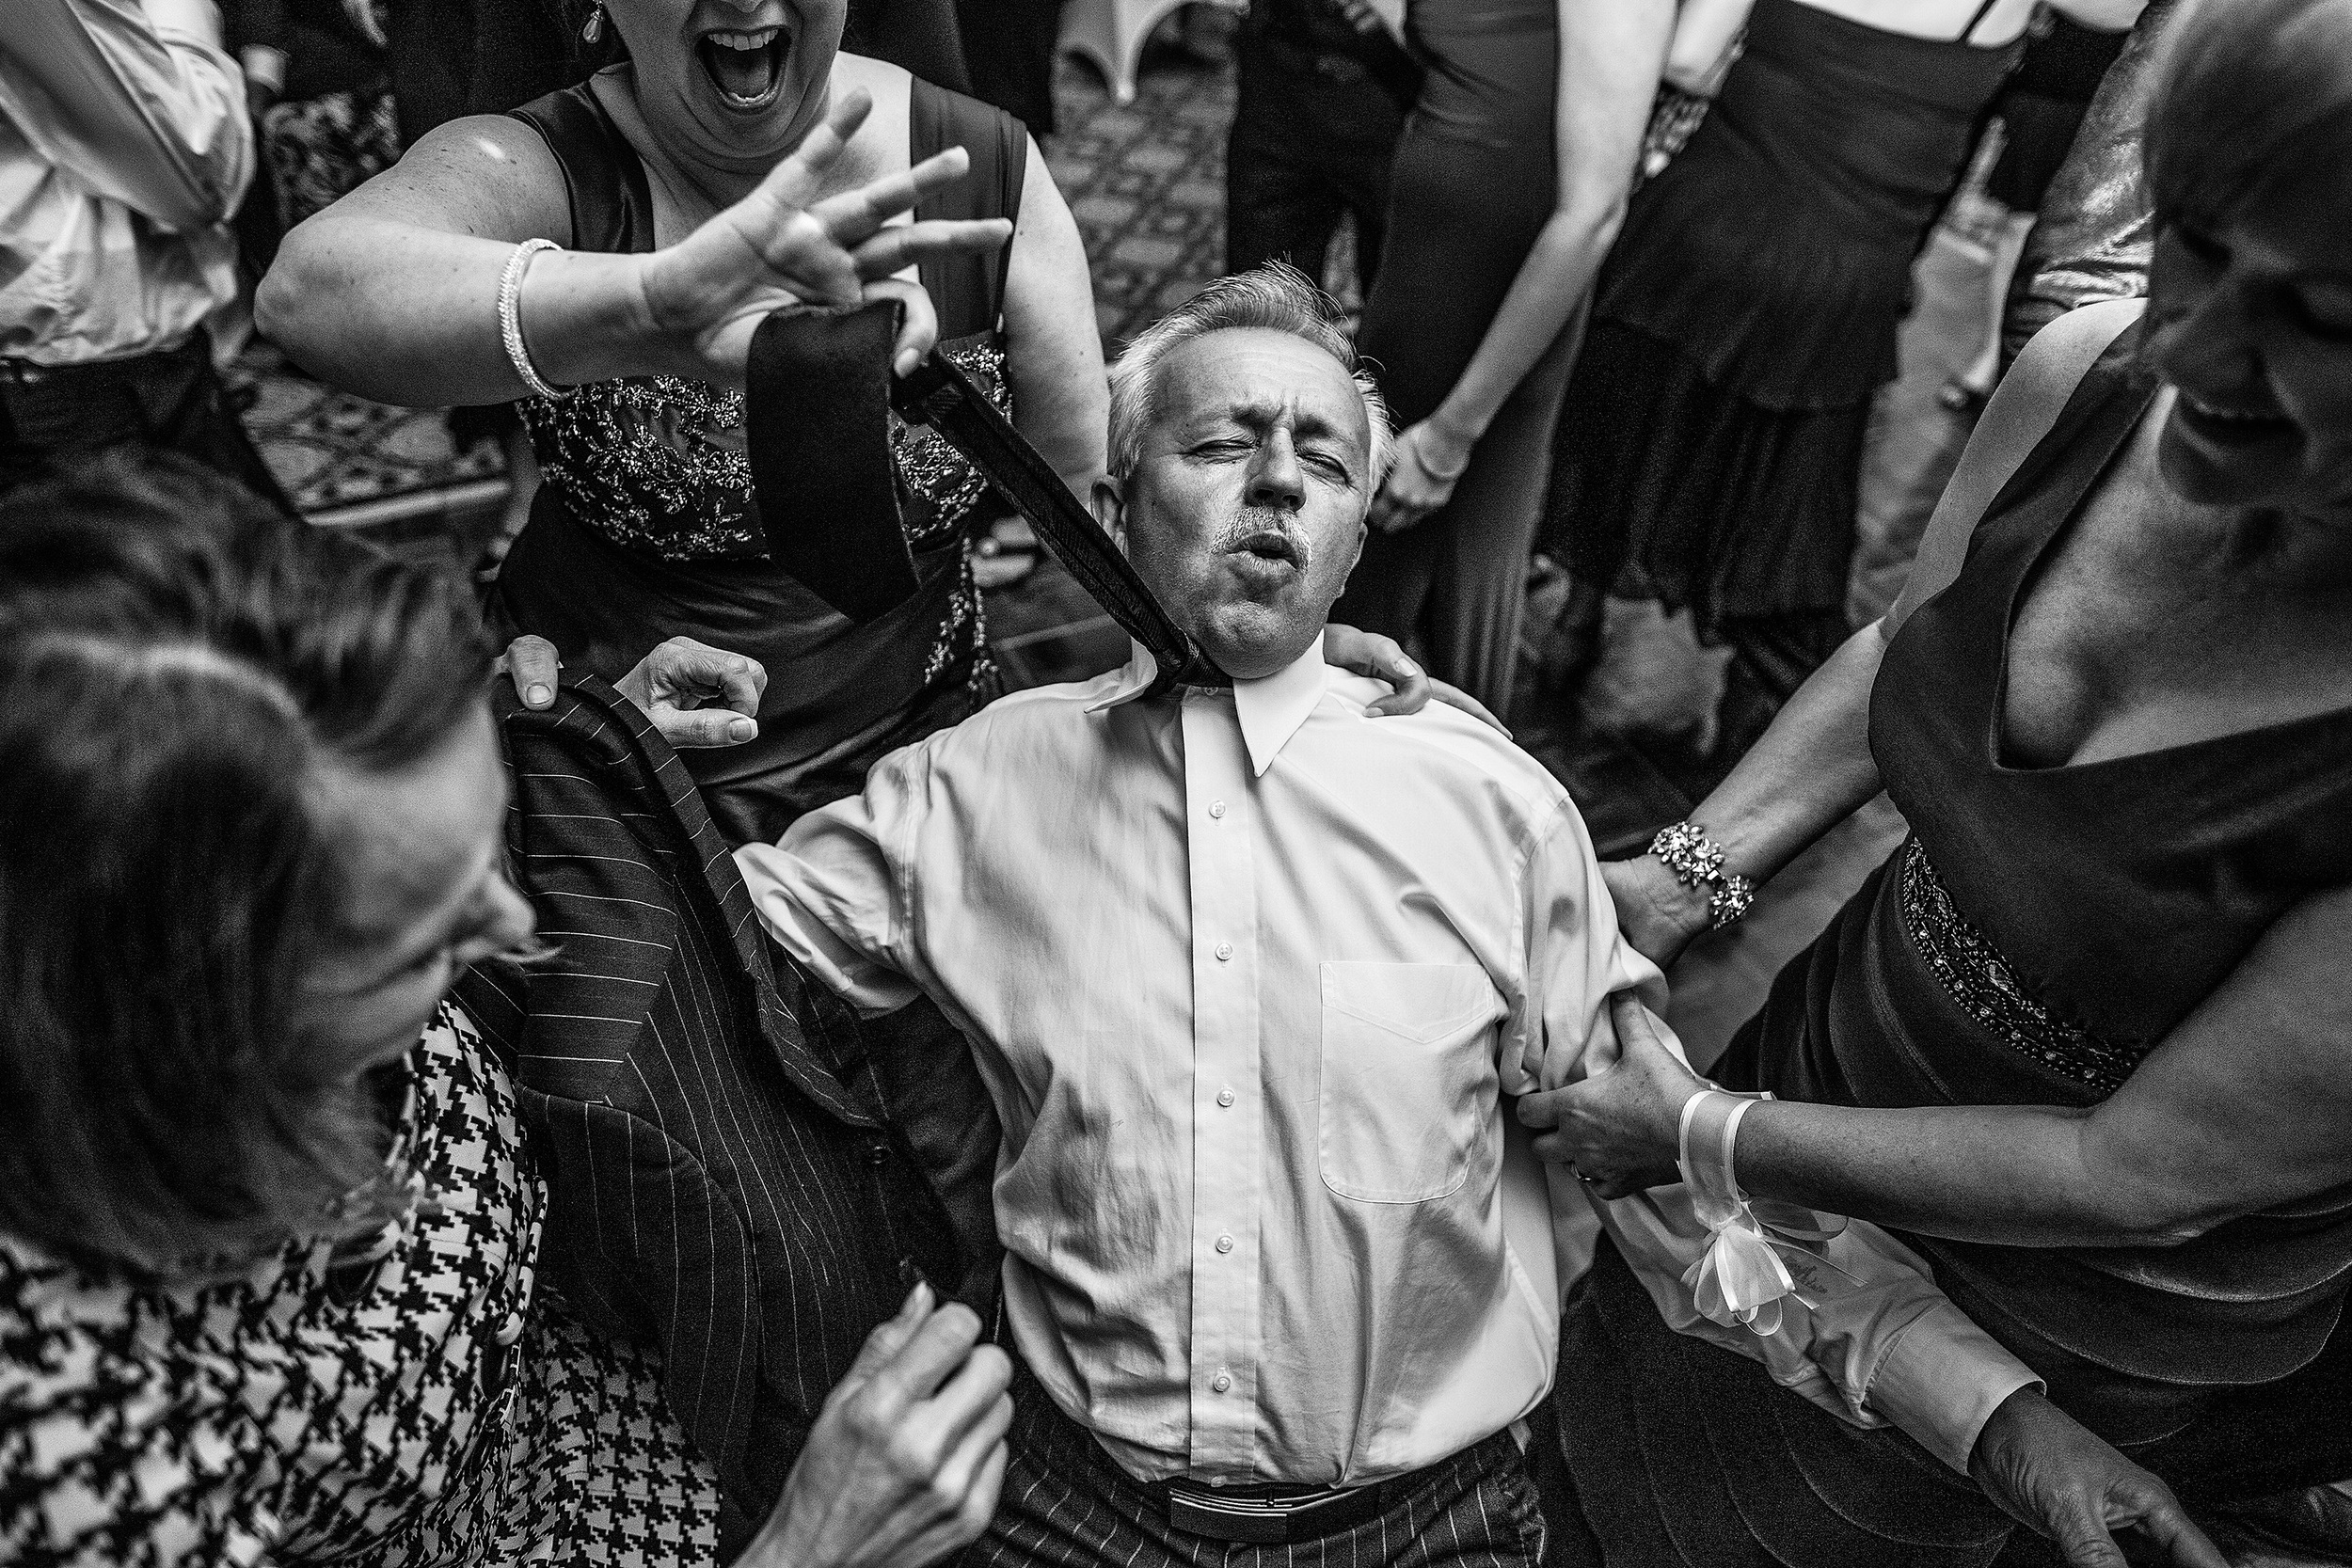 guest enjoying himself on the dance floor at a chateau laurier wedding